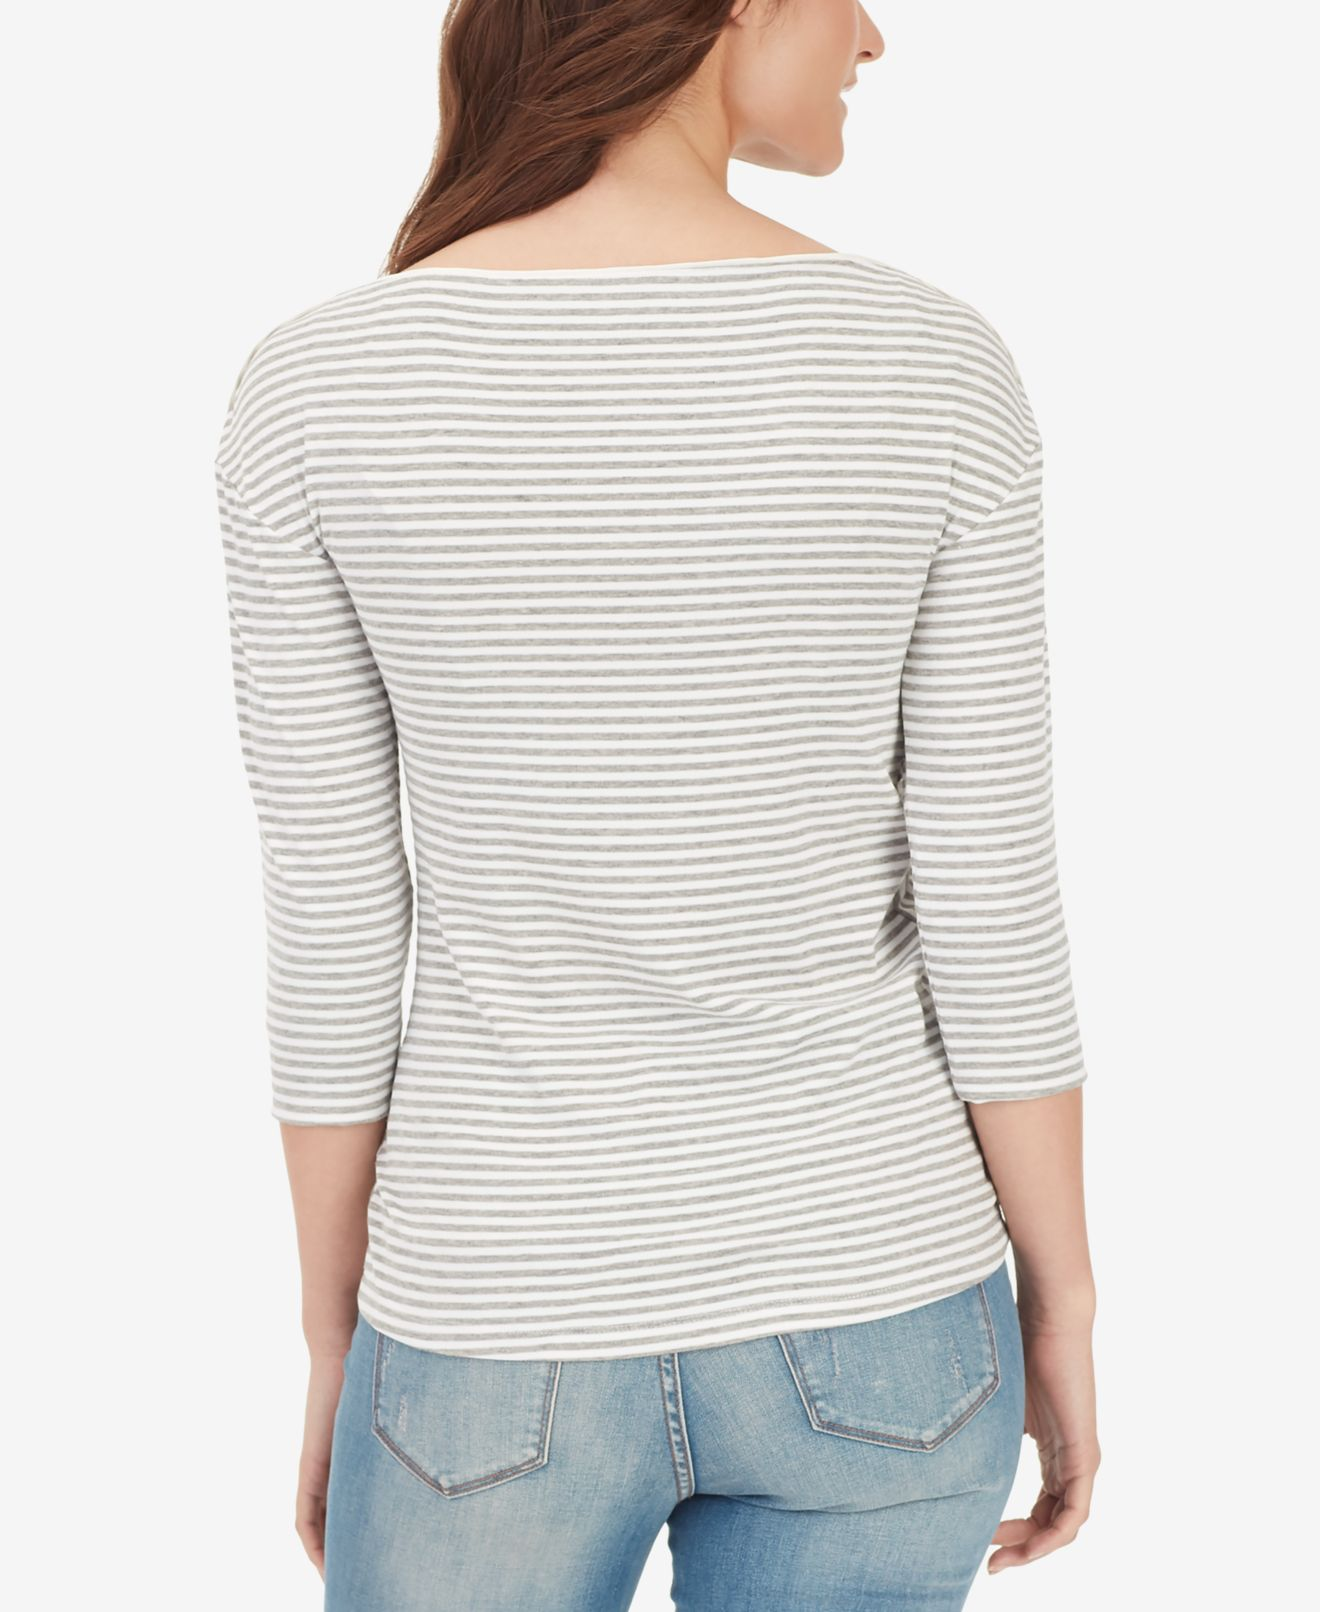 William-Rast-Women-039-s-Top-Blouse-Gray-Size-XL-Striped-Ribbed-Ruched thumbnail 2